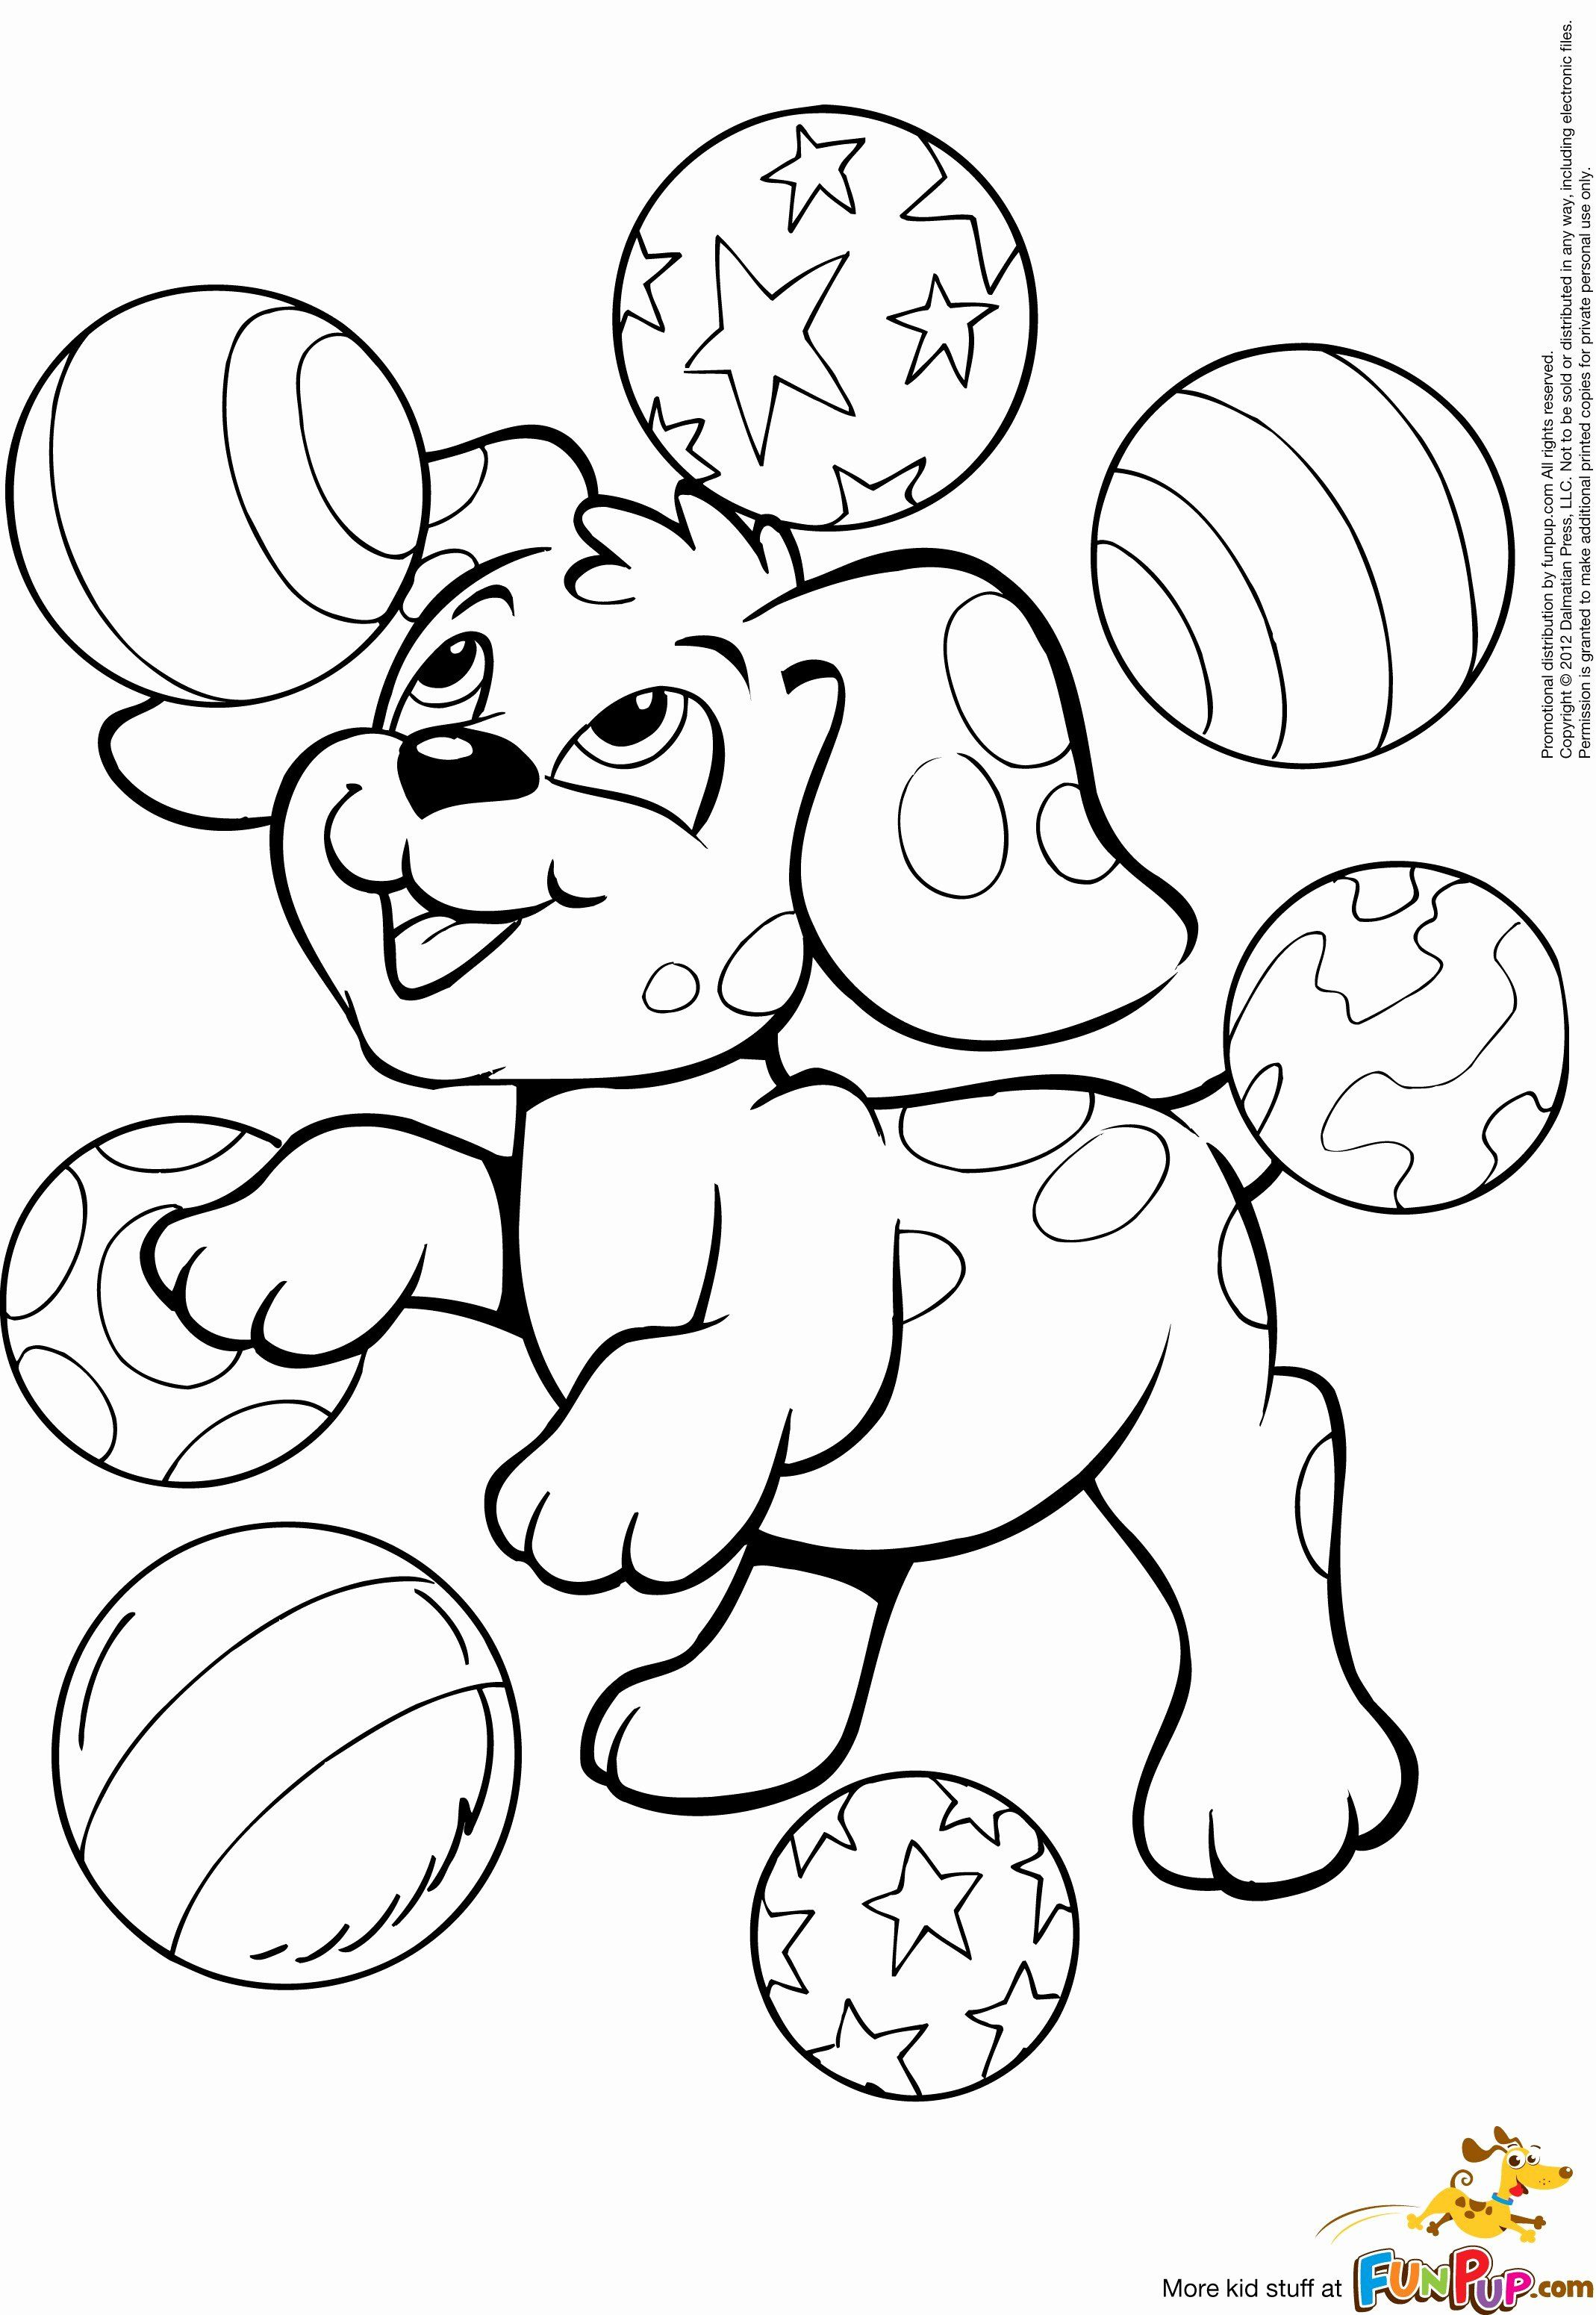 Cute Puppy Coloring Pages Printable Lovely Of Free Coloring Pages Puppies Sabadaphnecottage Puppy Coloring Pages Cool Coloring Pages Free Coloring Pages